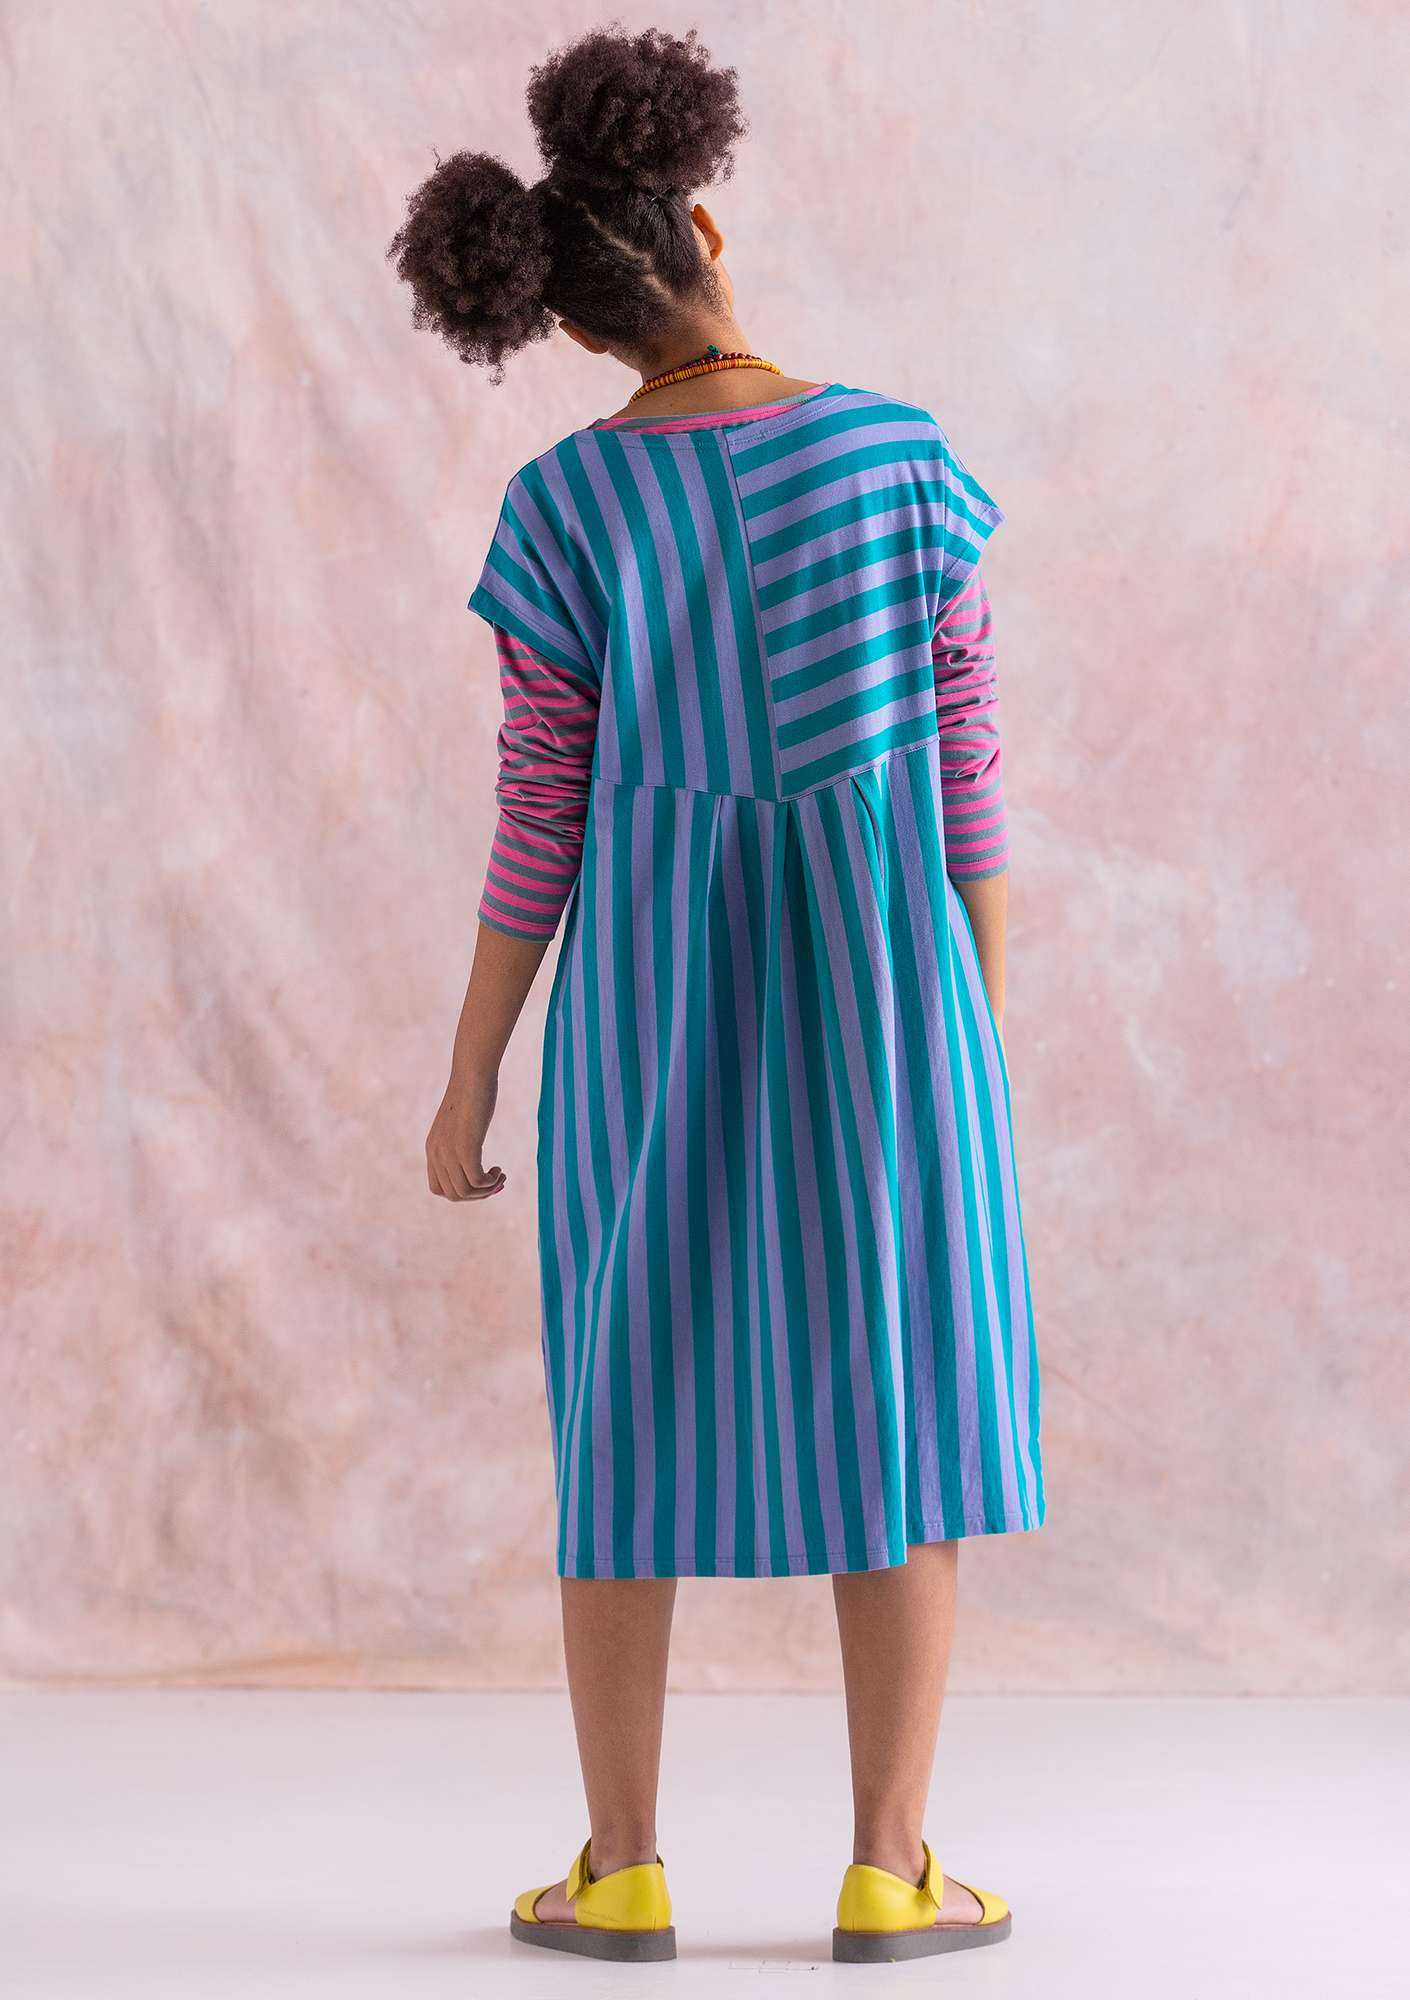 Dress in organic cotton forget-me-not/orient green